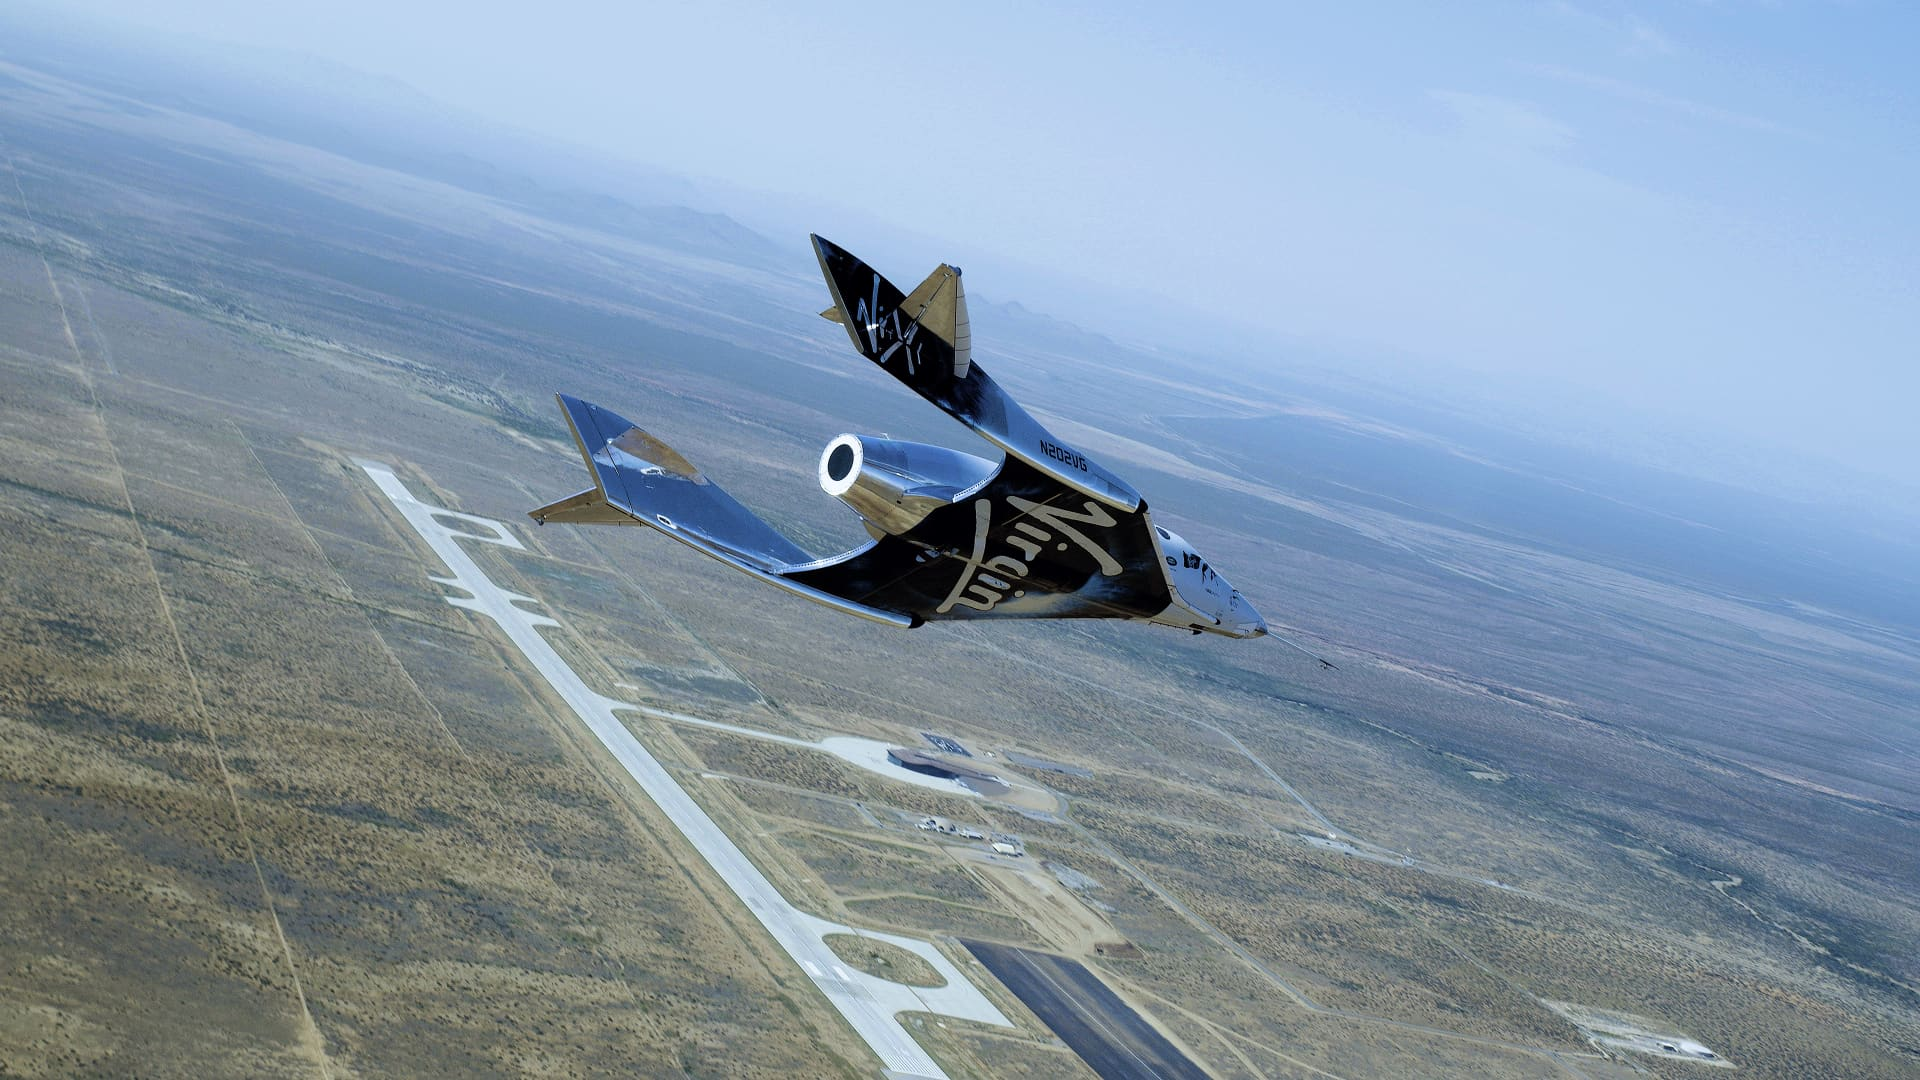 Virgin Galactic's spacecraft Unity glides in for a landing after a flight test in New Mexico on June 25, 2020.